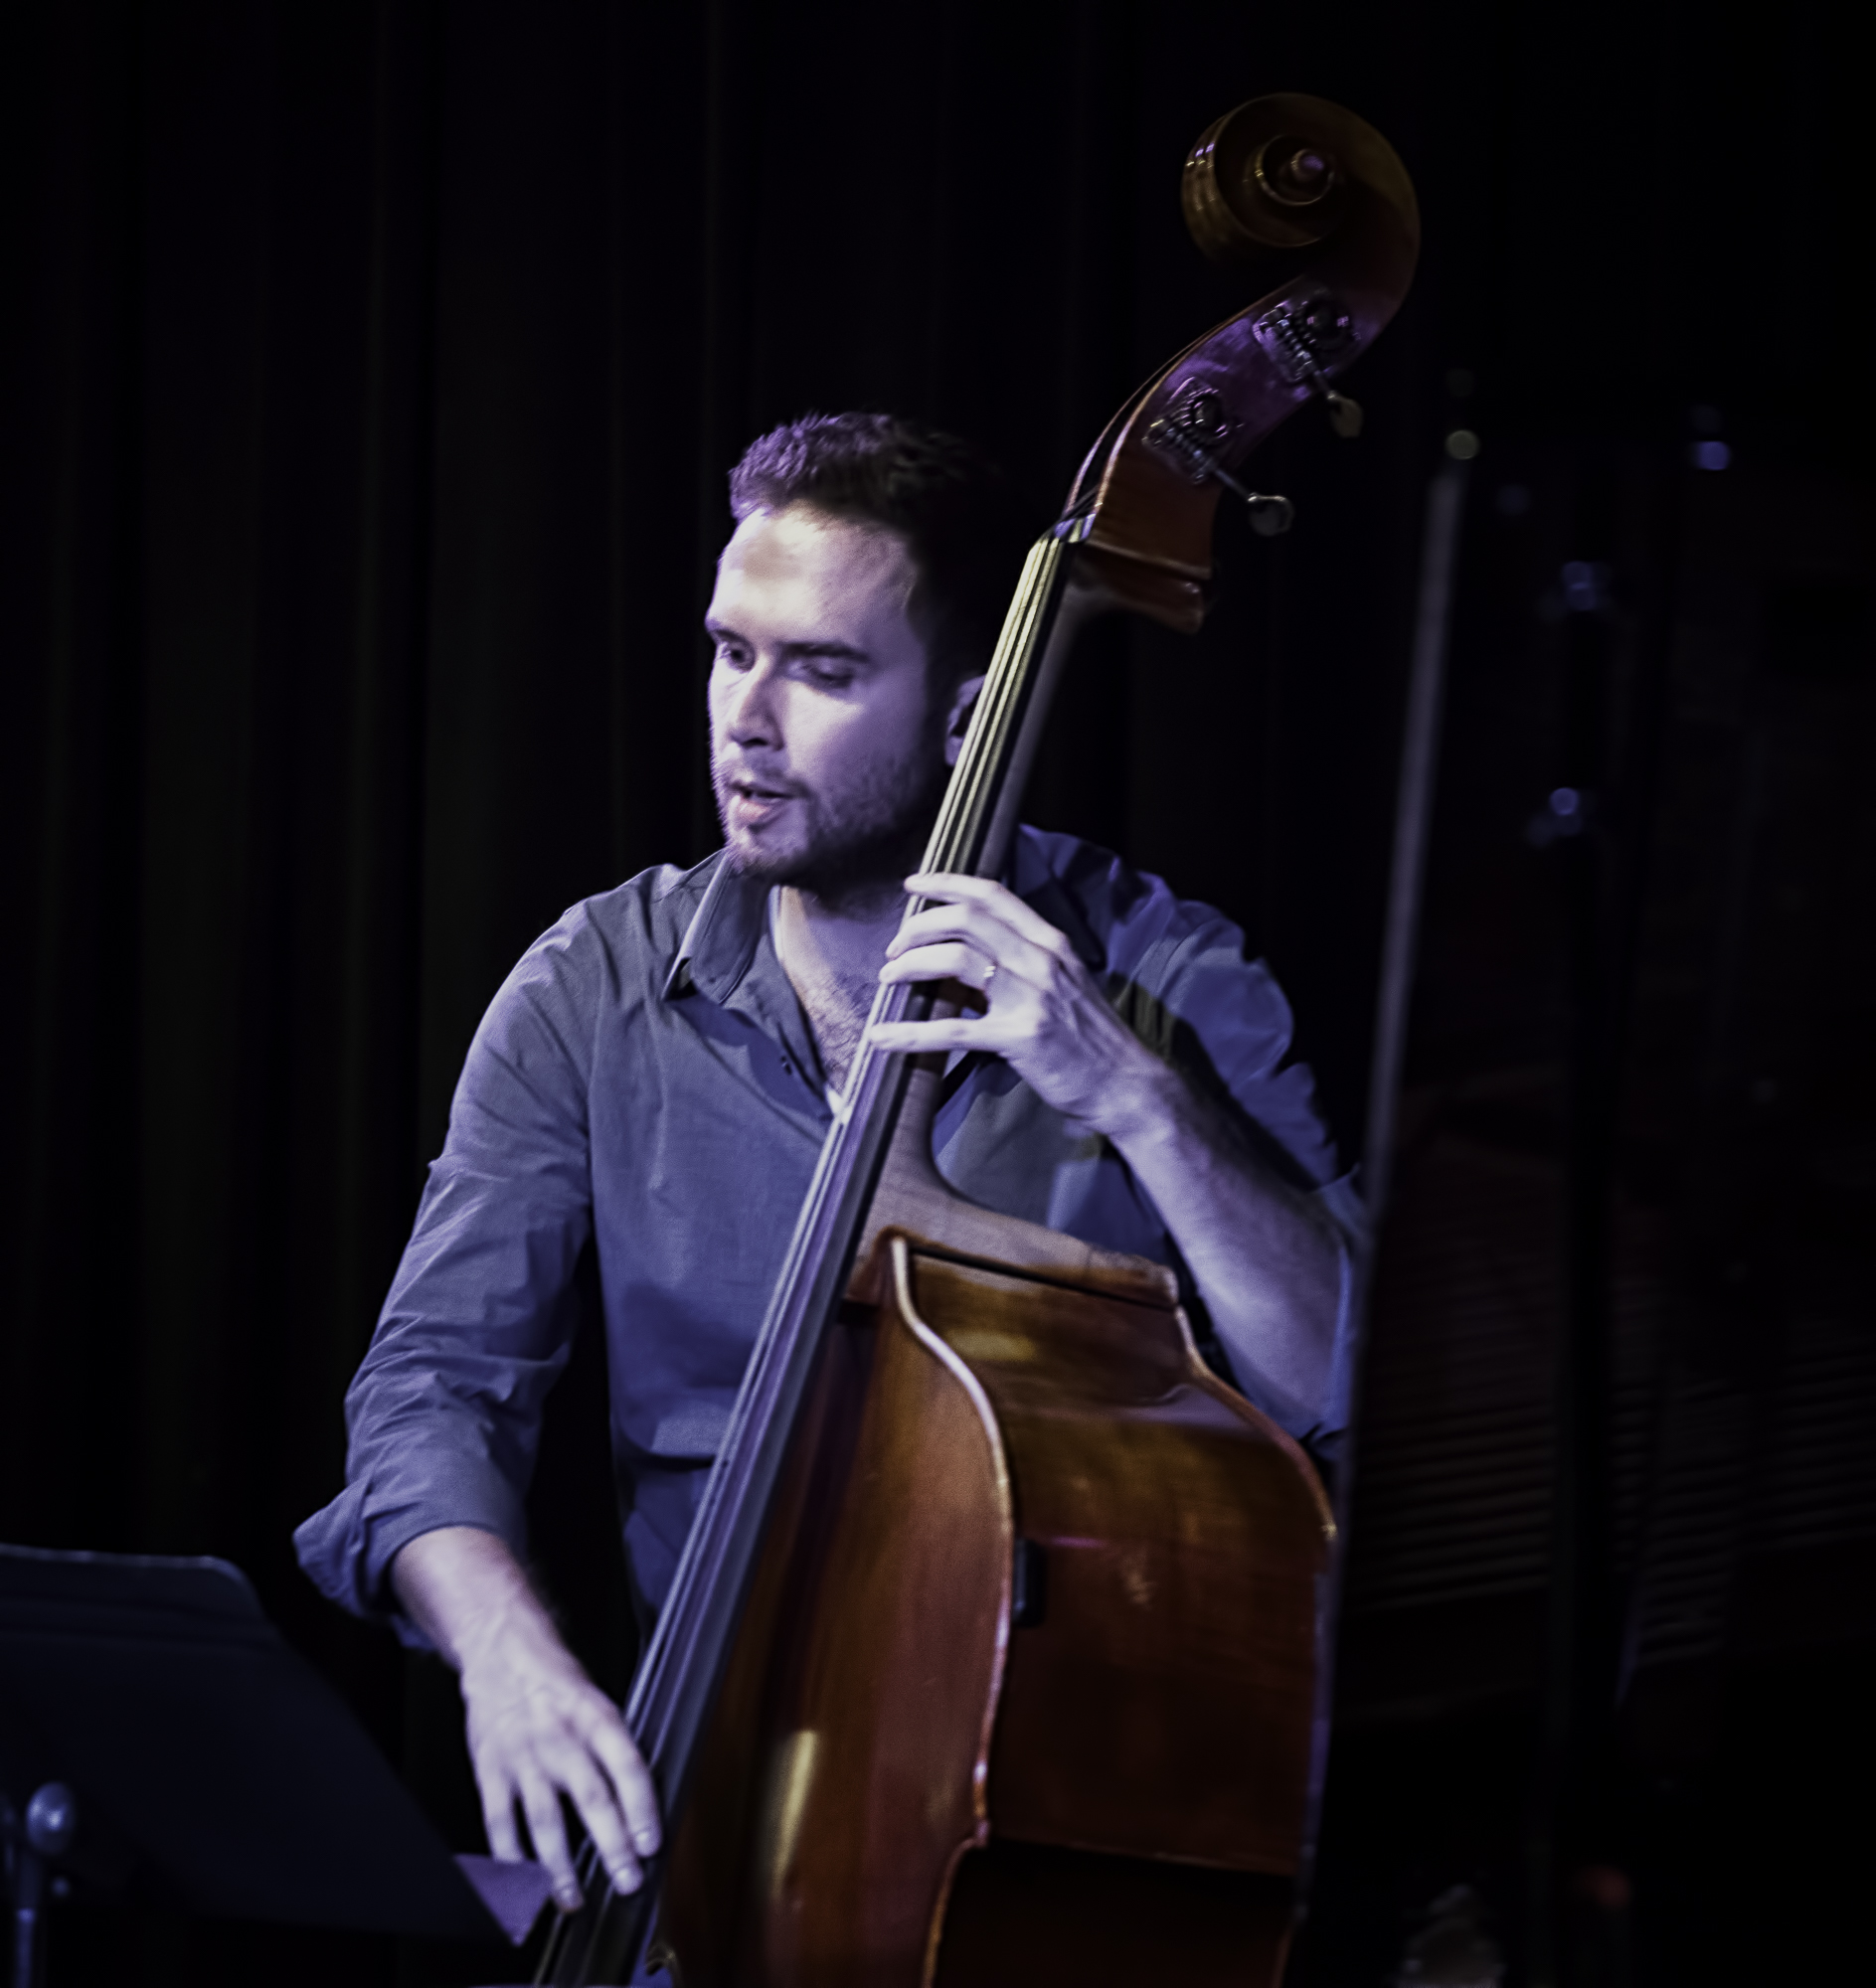 Ben Hedquist with the Michael Kocour Trio at the Nash in Phoenix